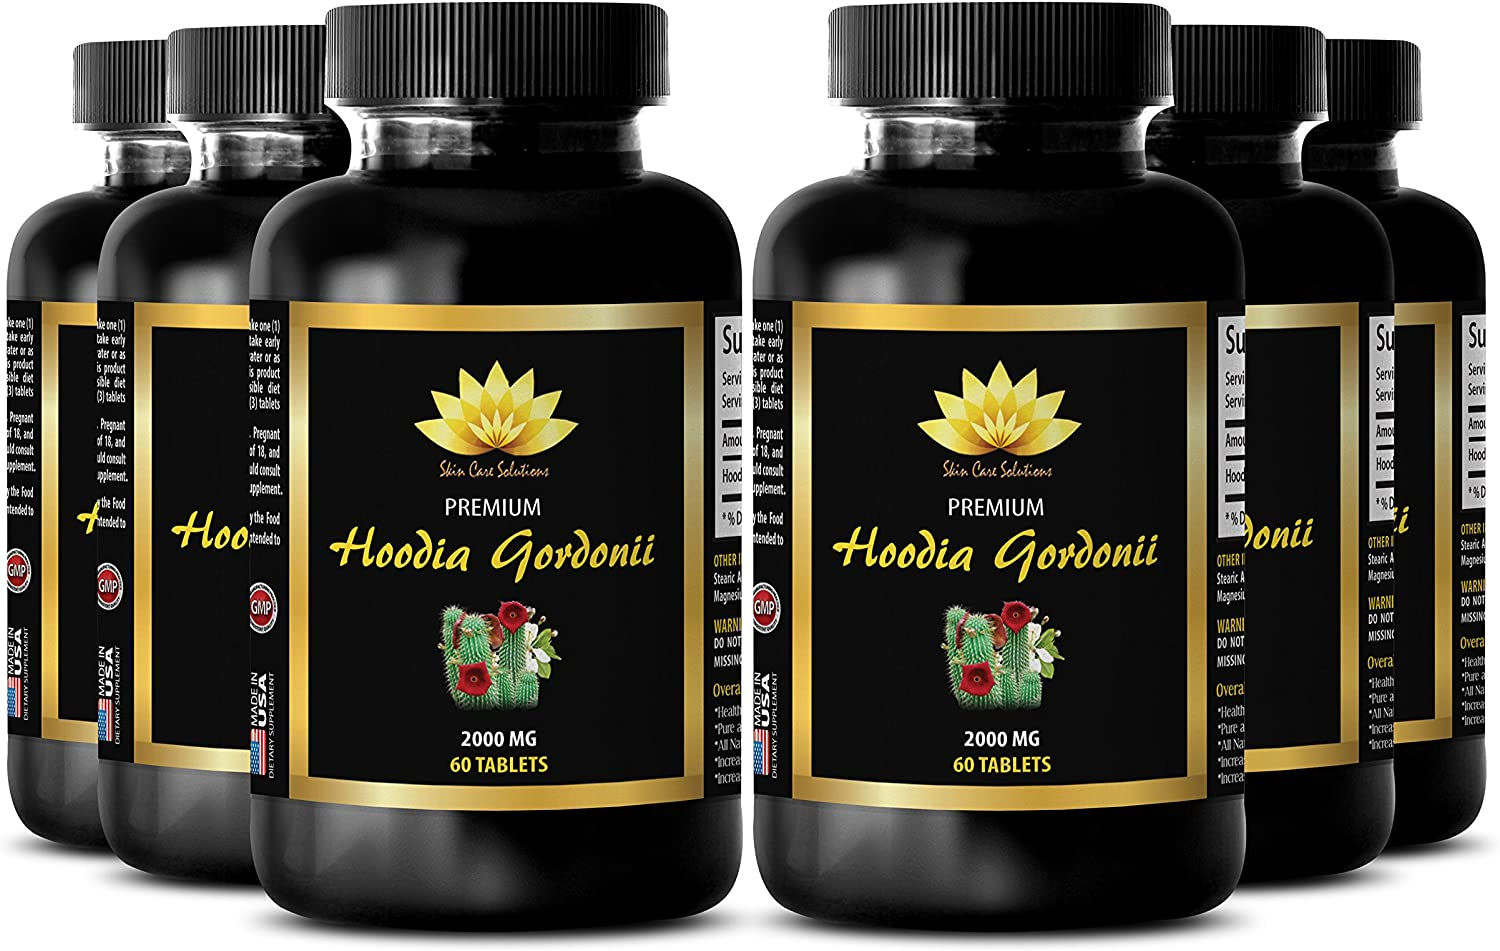 Belly Fat Import Burner Pills for Women - 2000m Extract HOODIA GORDONII Max 59% OFF